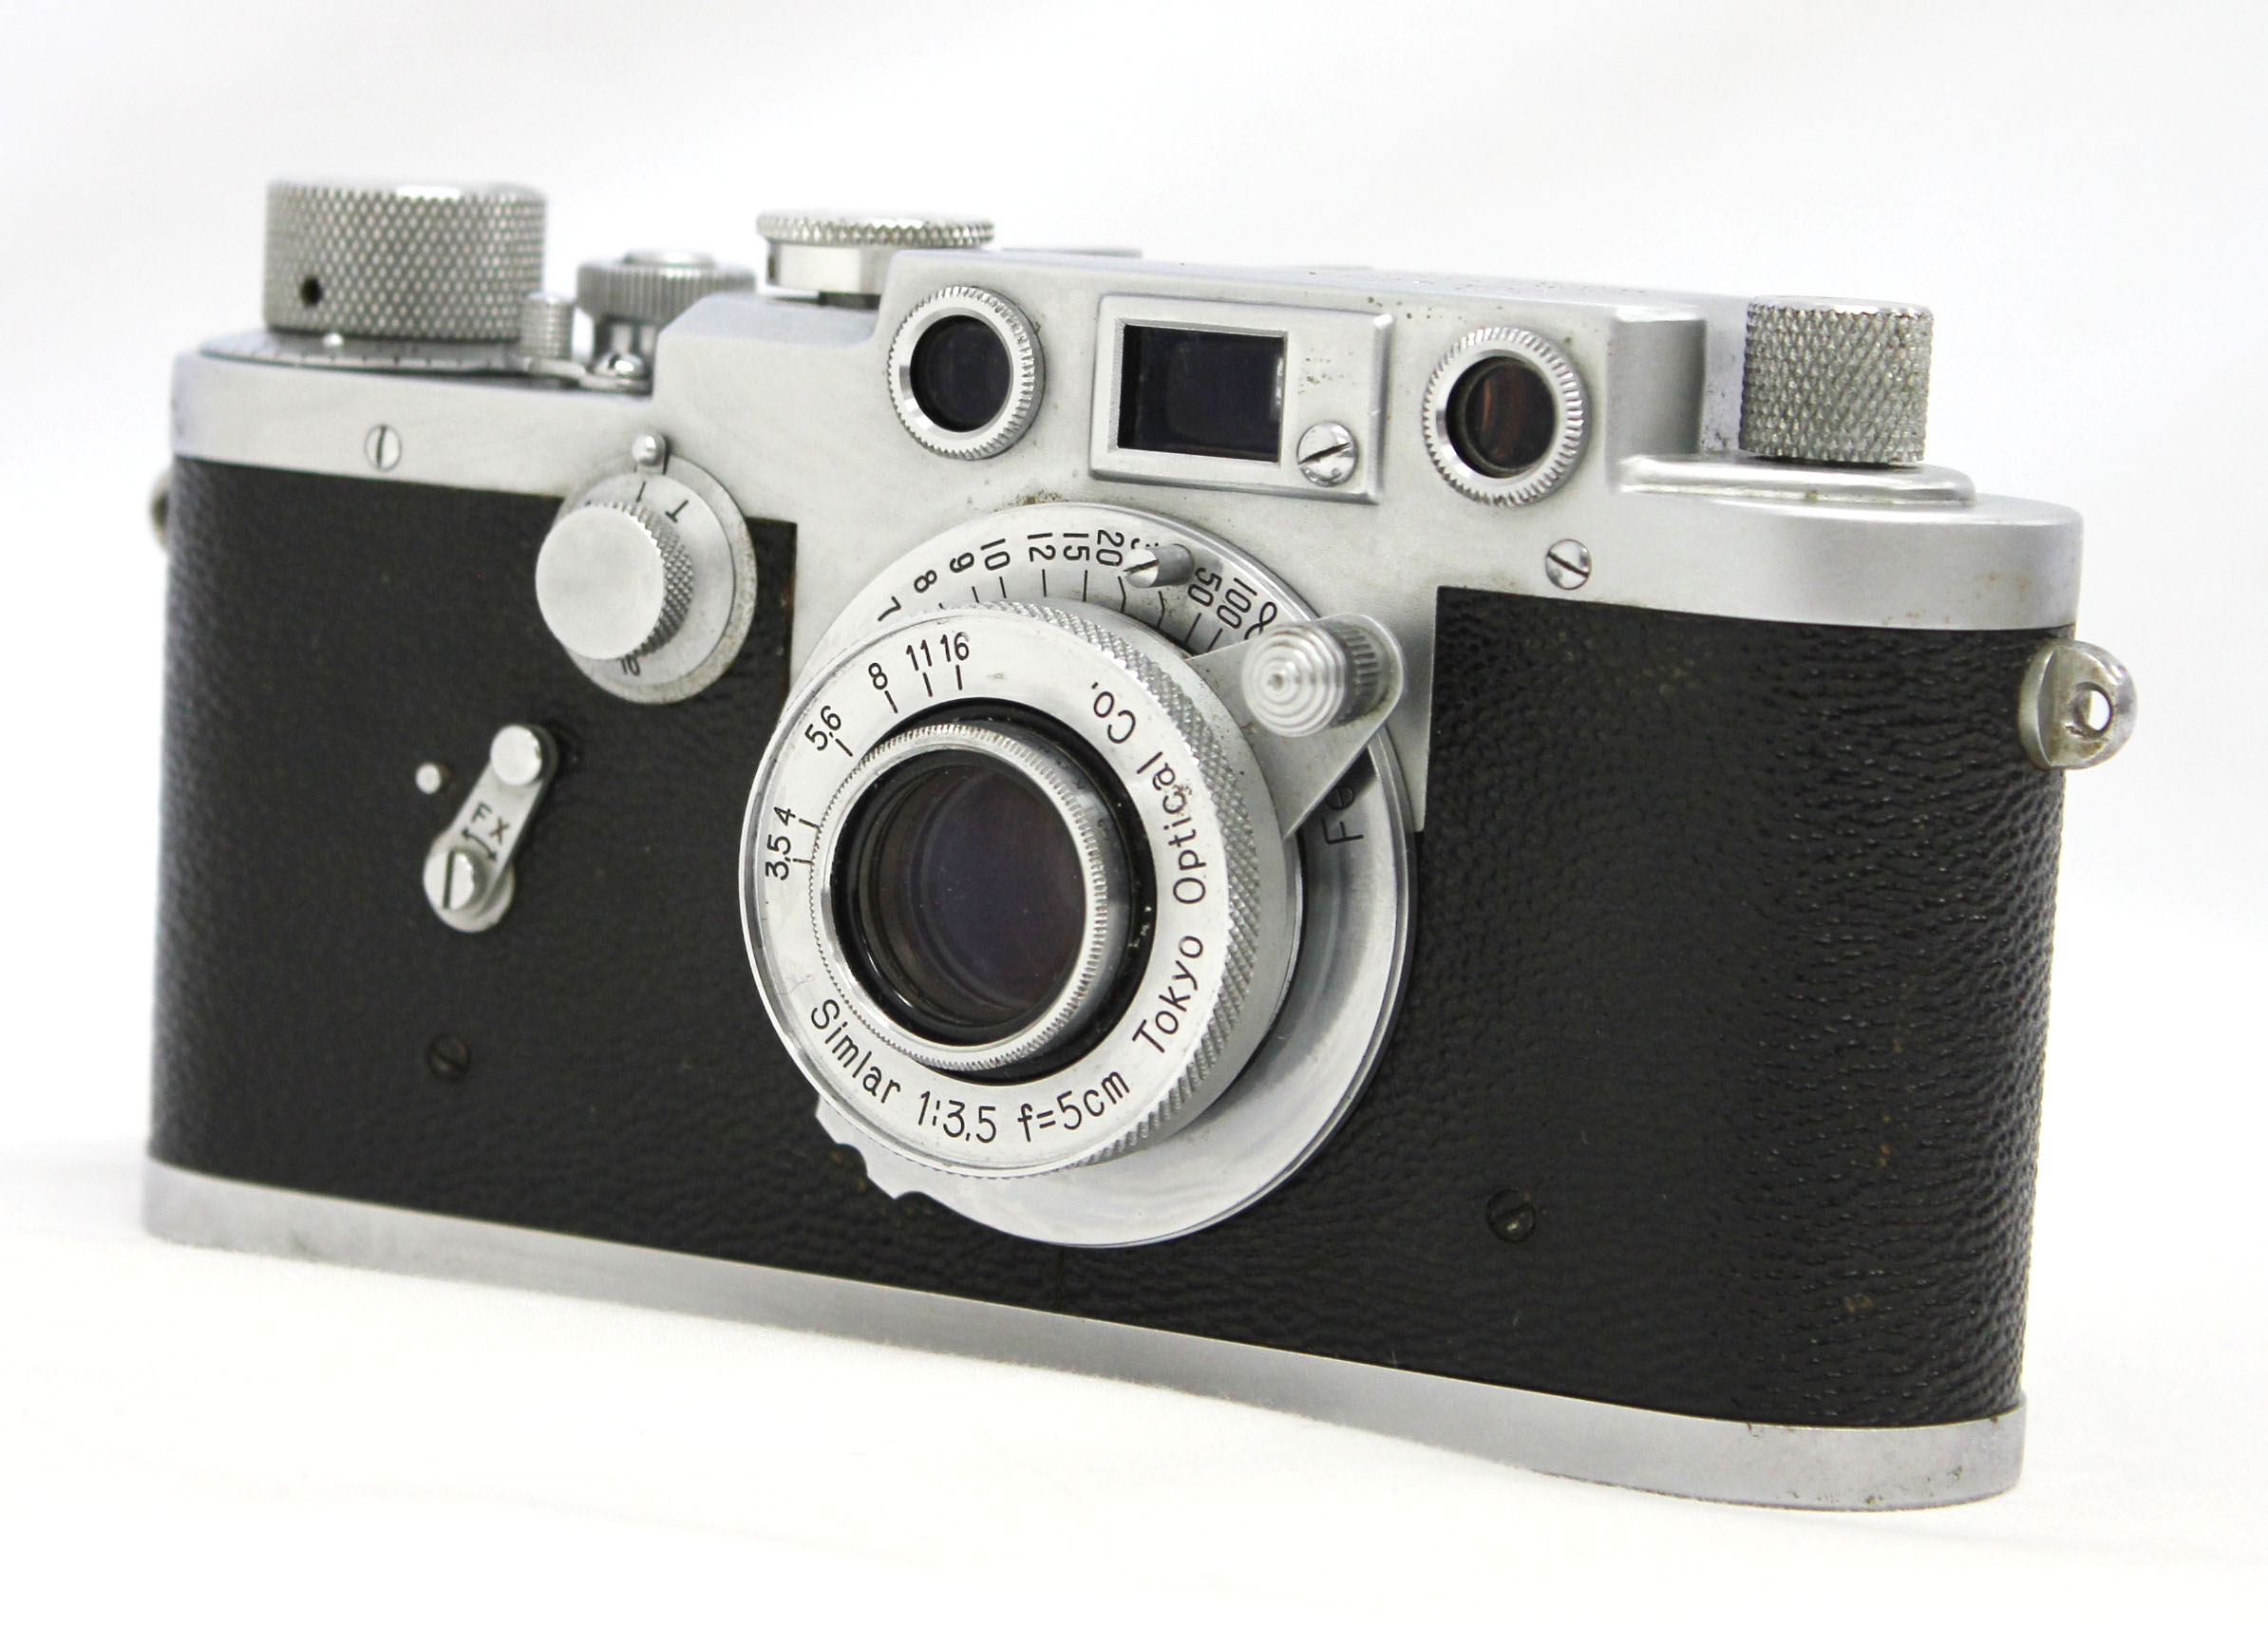 Japan Used Camera Shop | Leotax F Leica Screw Mount LTM M39 Rangefinder Camera with 50mm F/3.5 Lens from Japan